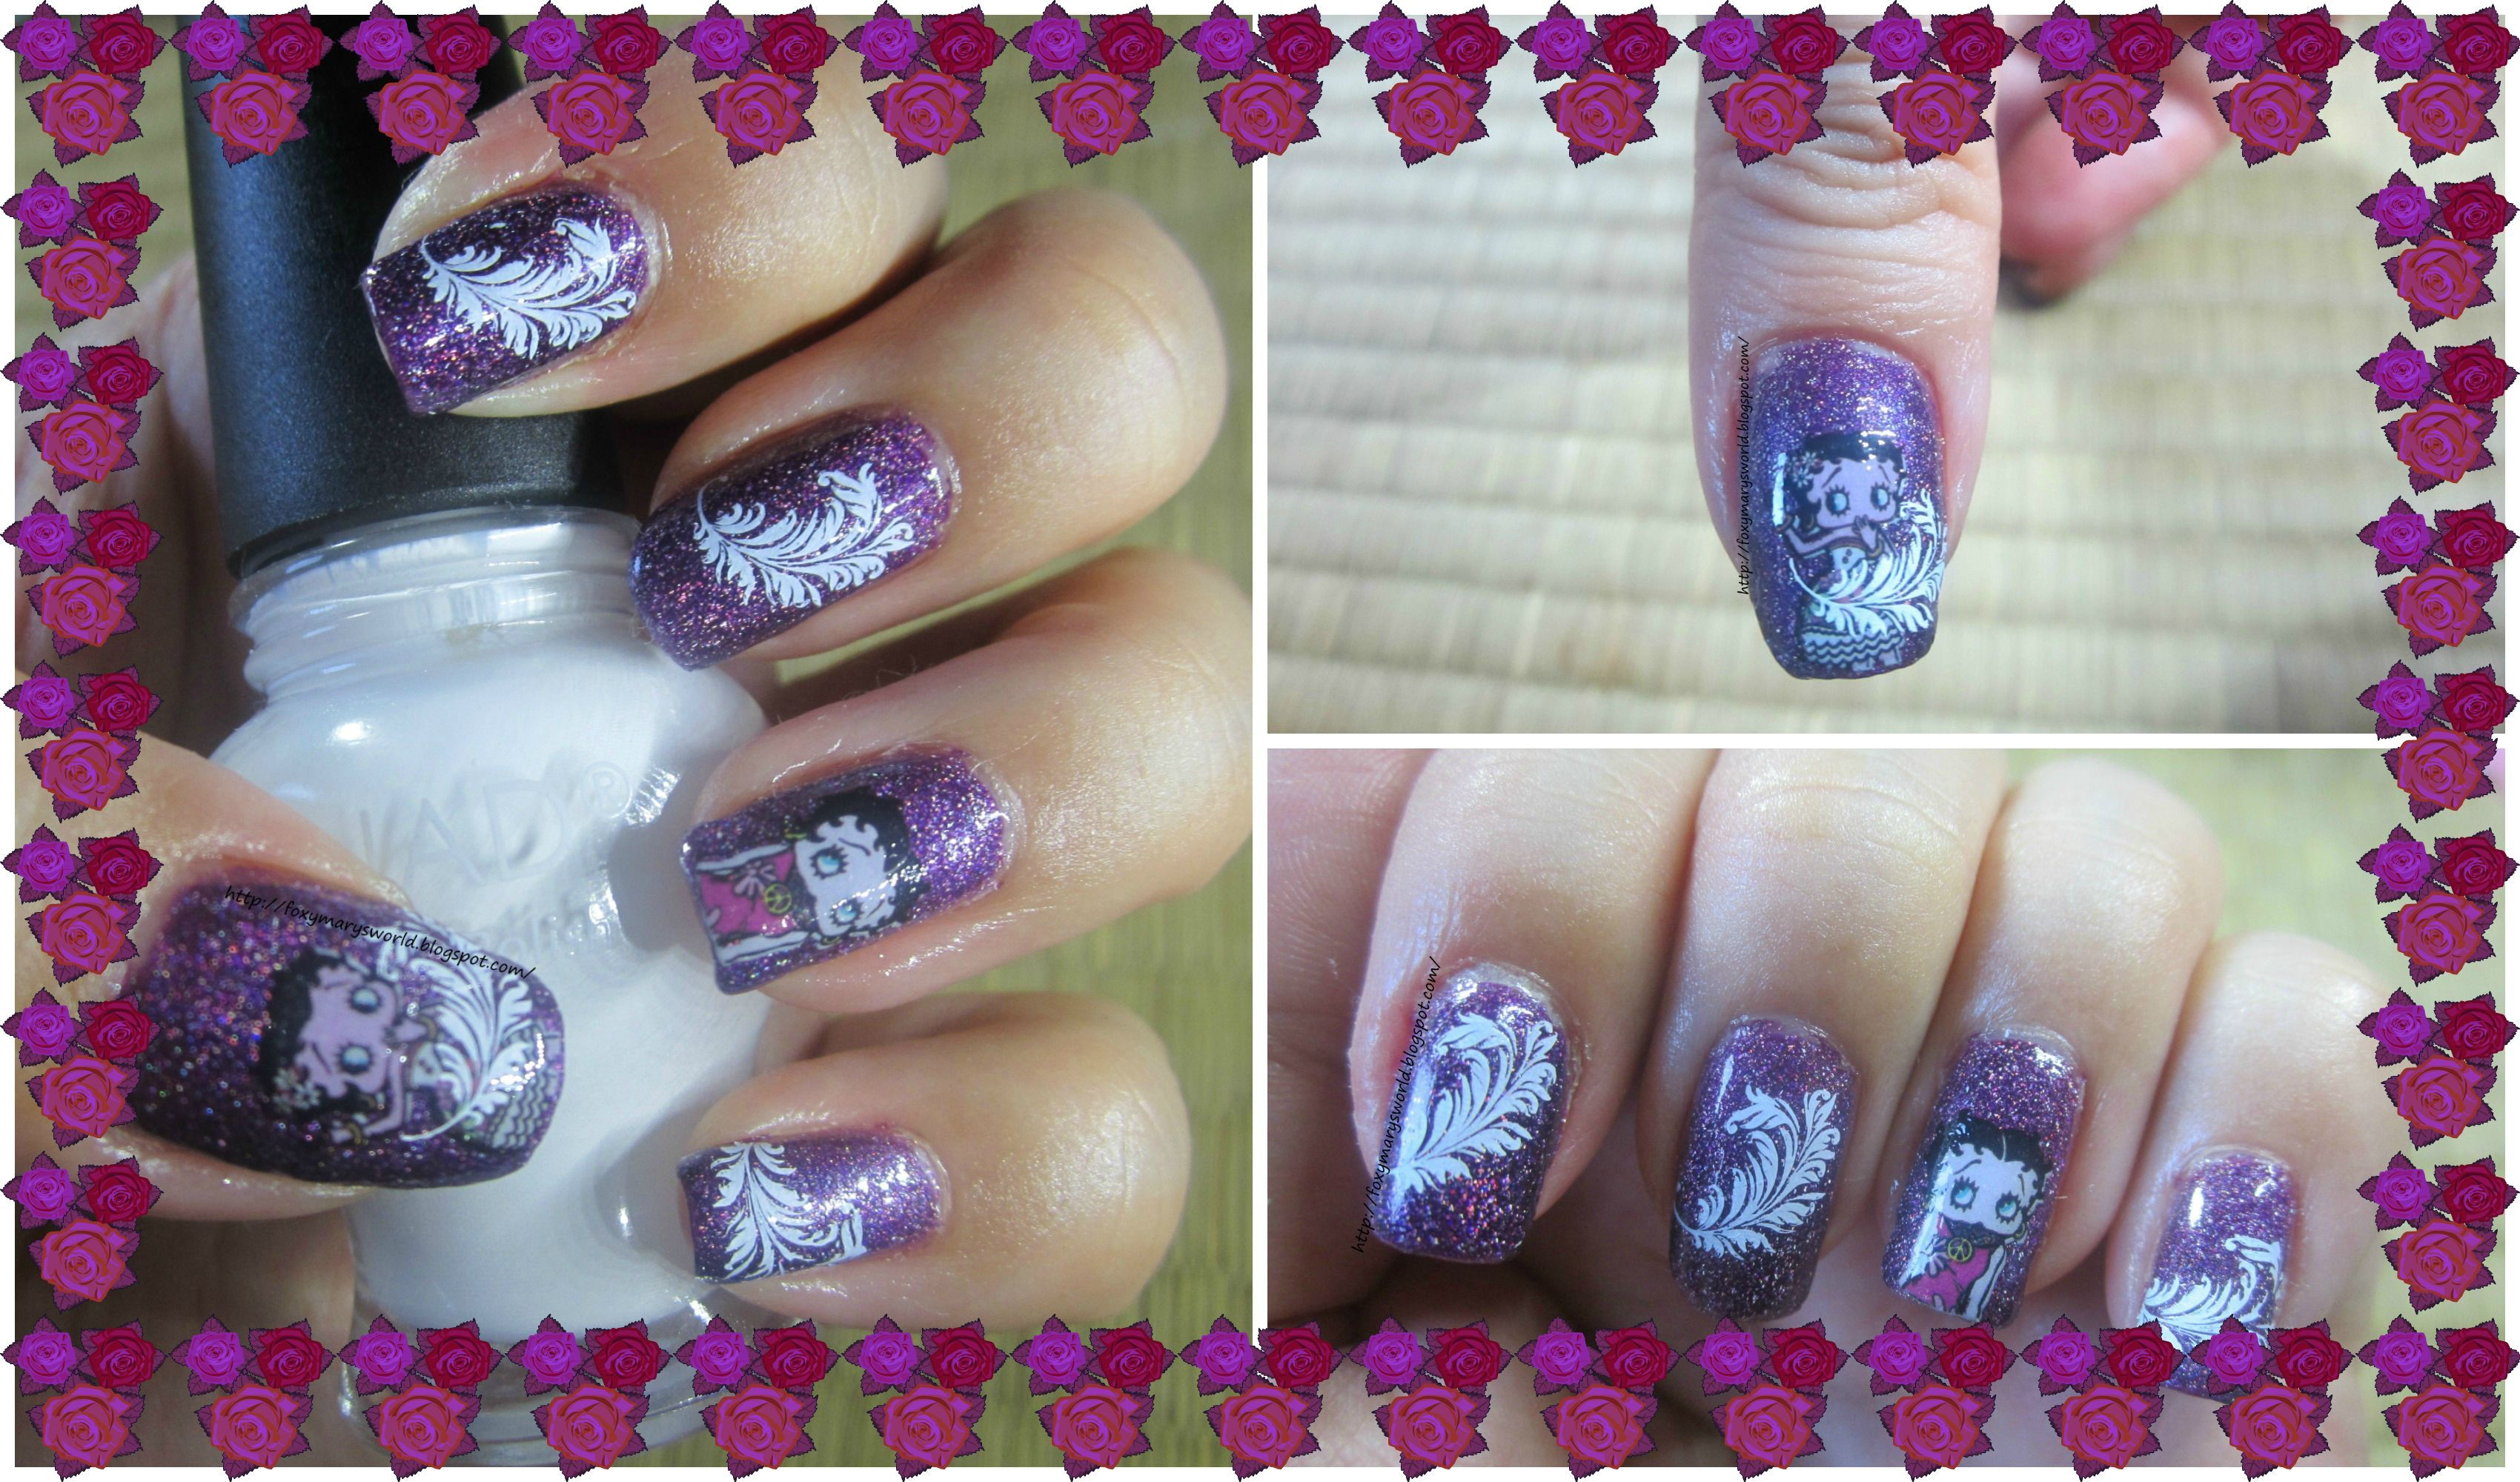 NOTD Betty Boop nails.